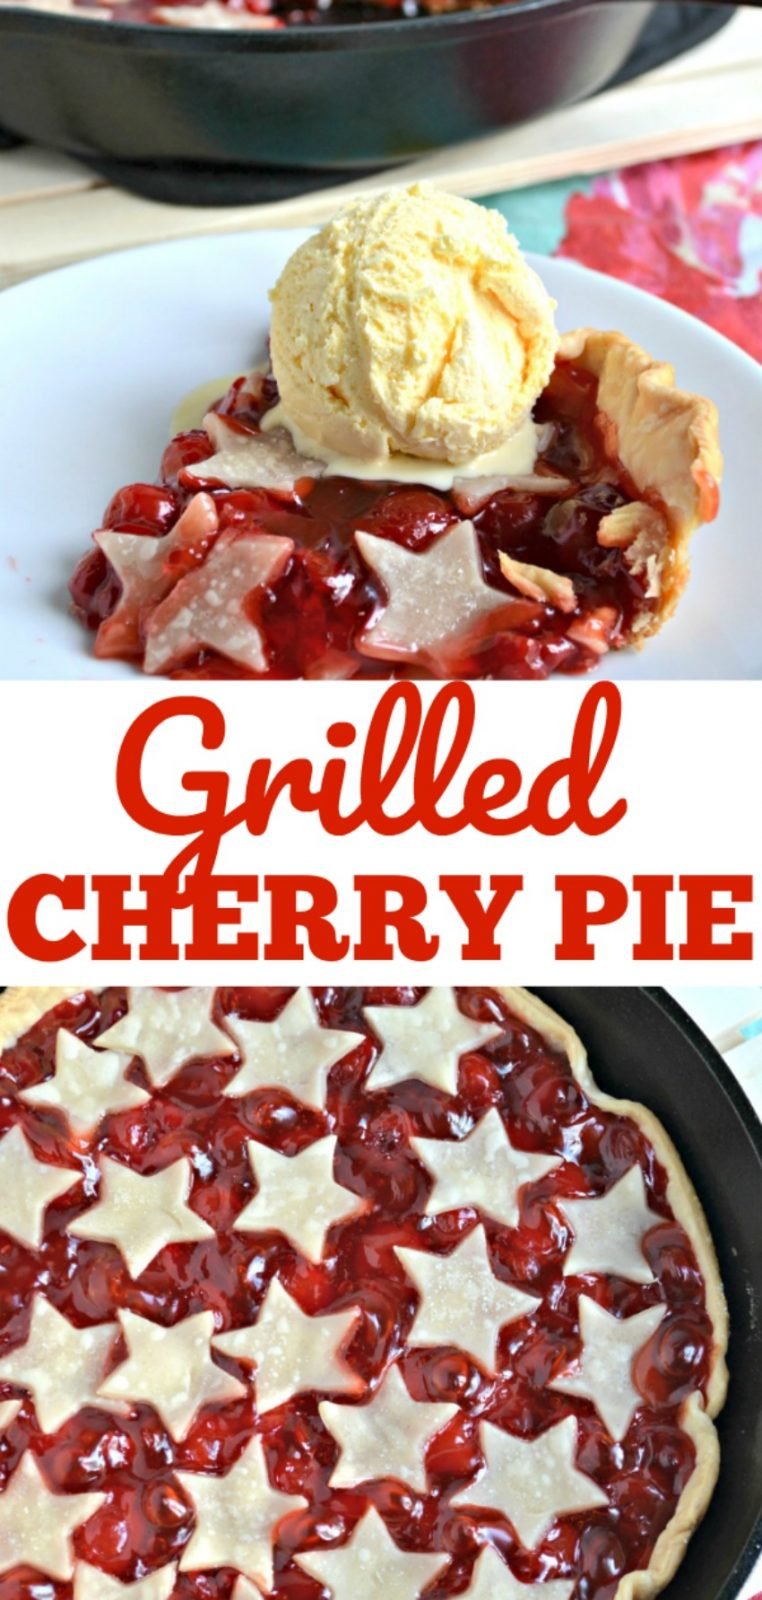 Grilled Cherry Pie